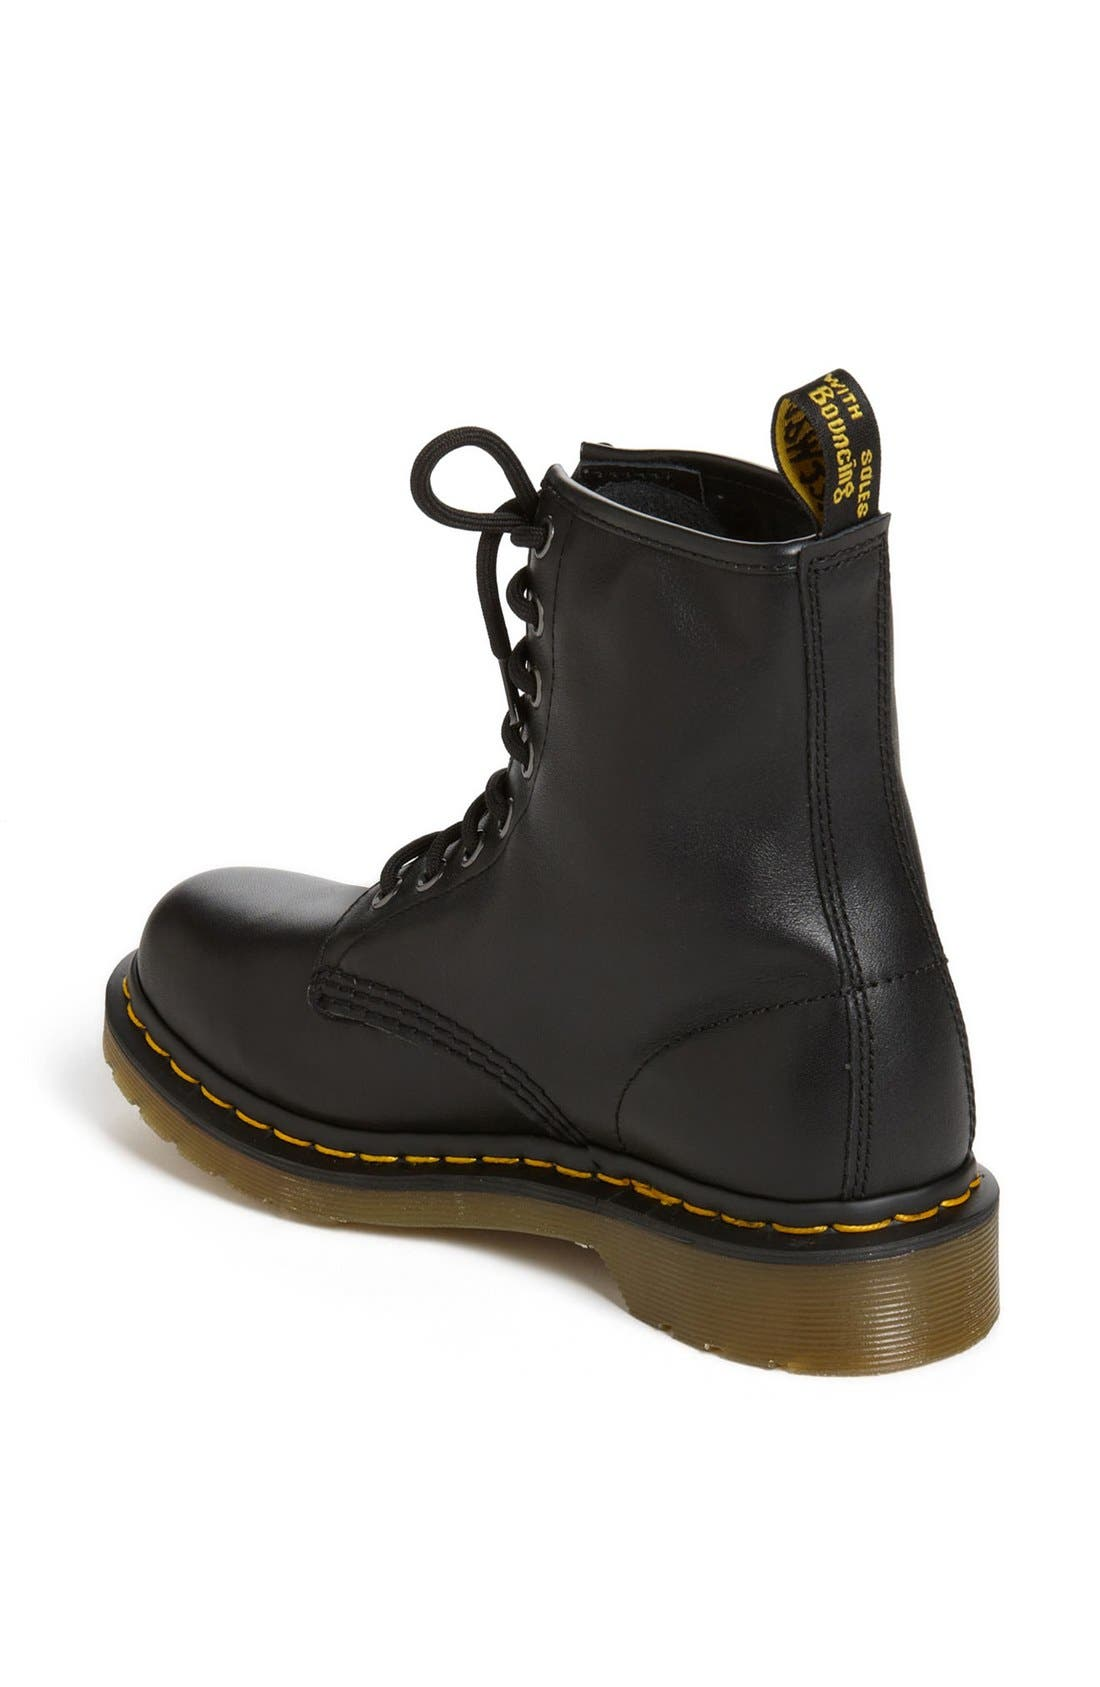 1460 W Boot,                             Alternate thumbnail 2, color,                             002